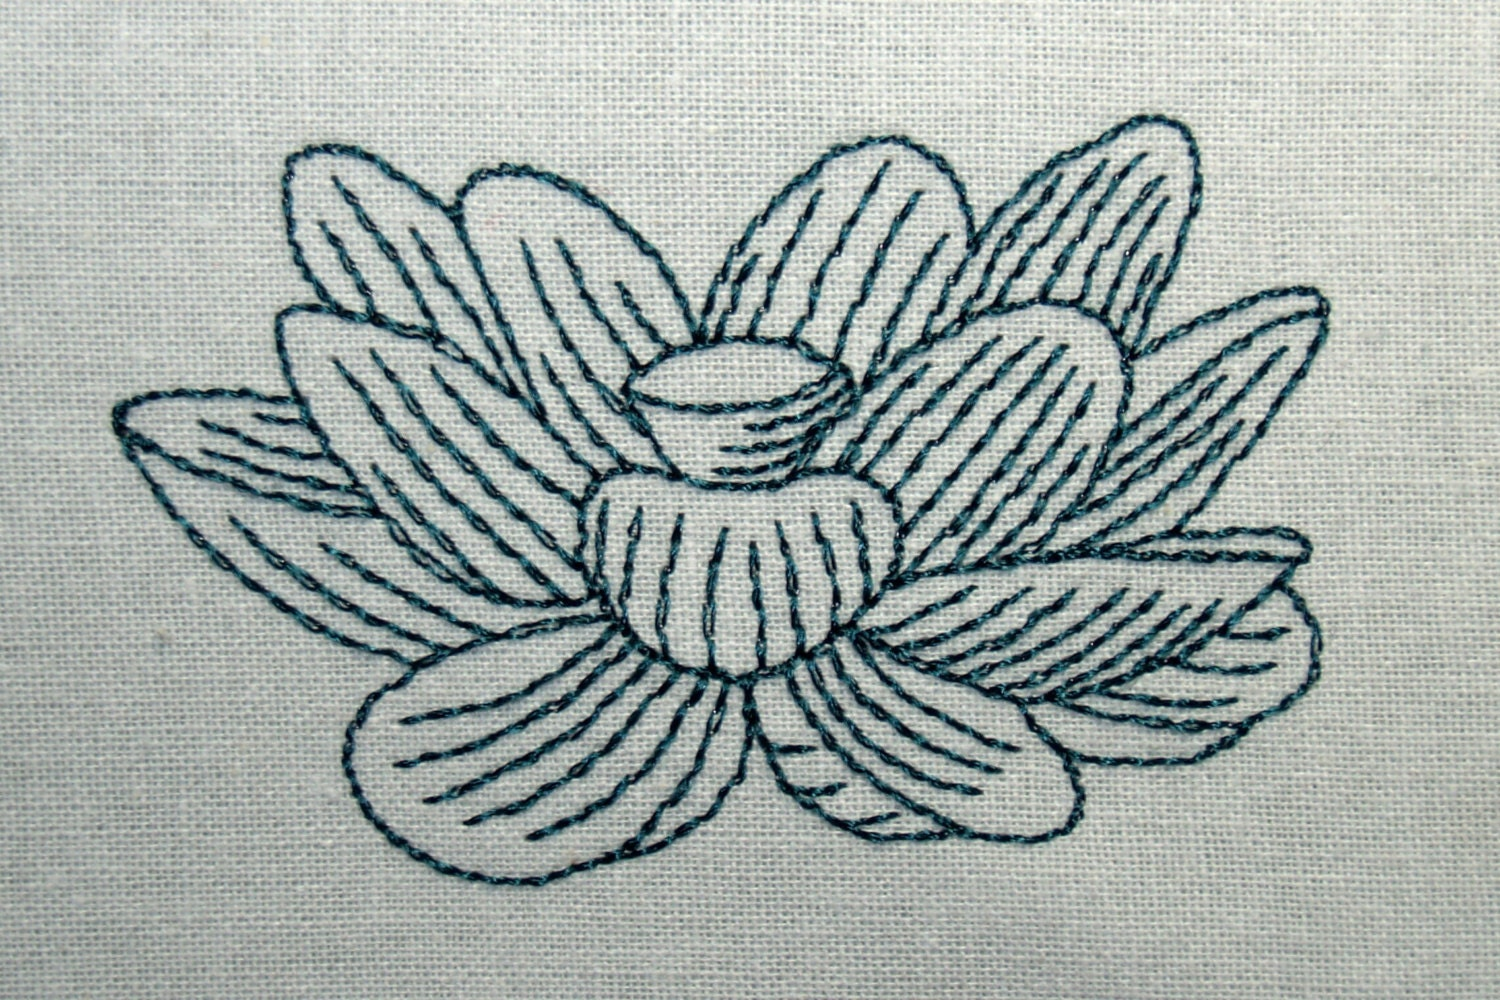 Line Art Embroidery : Lotus line art machine embroidery design download